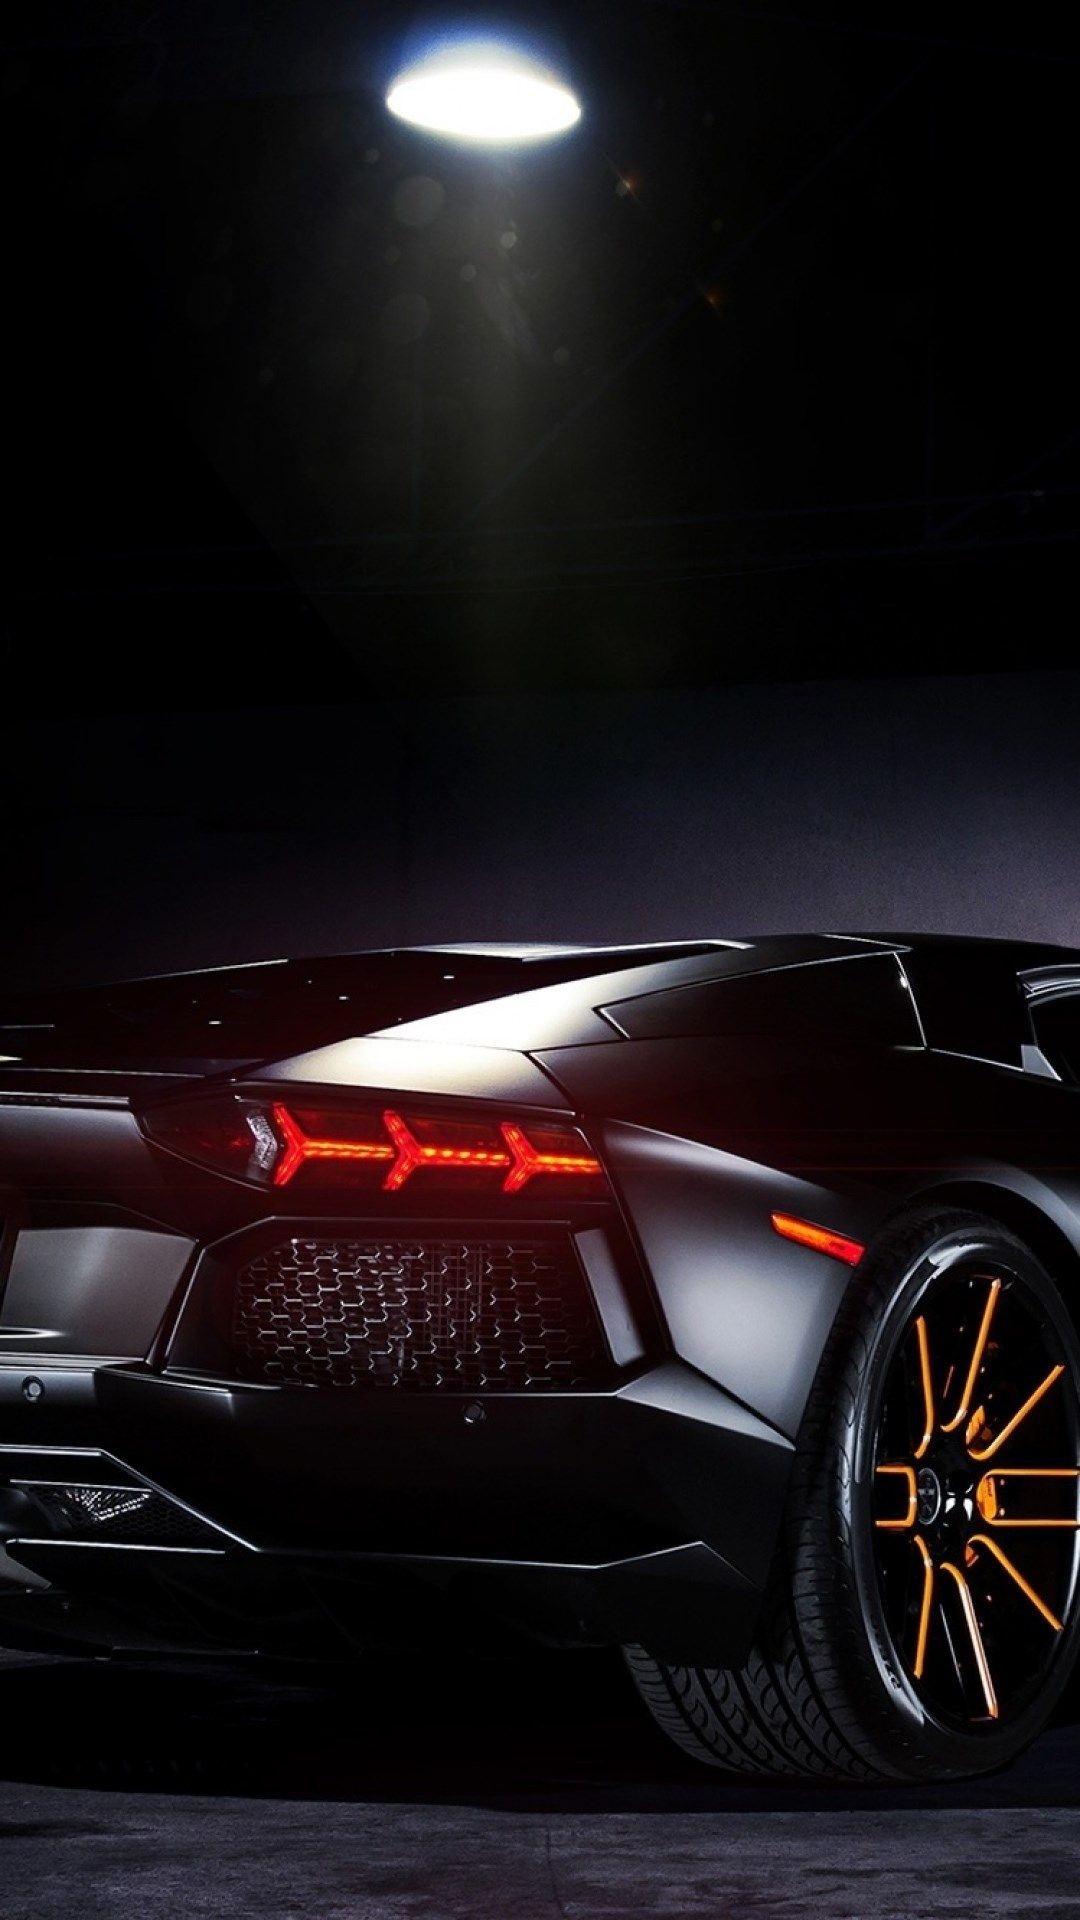 Black Lamborghini 1080 X 1920 Wallpaper For Phone Oboi Pinterest